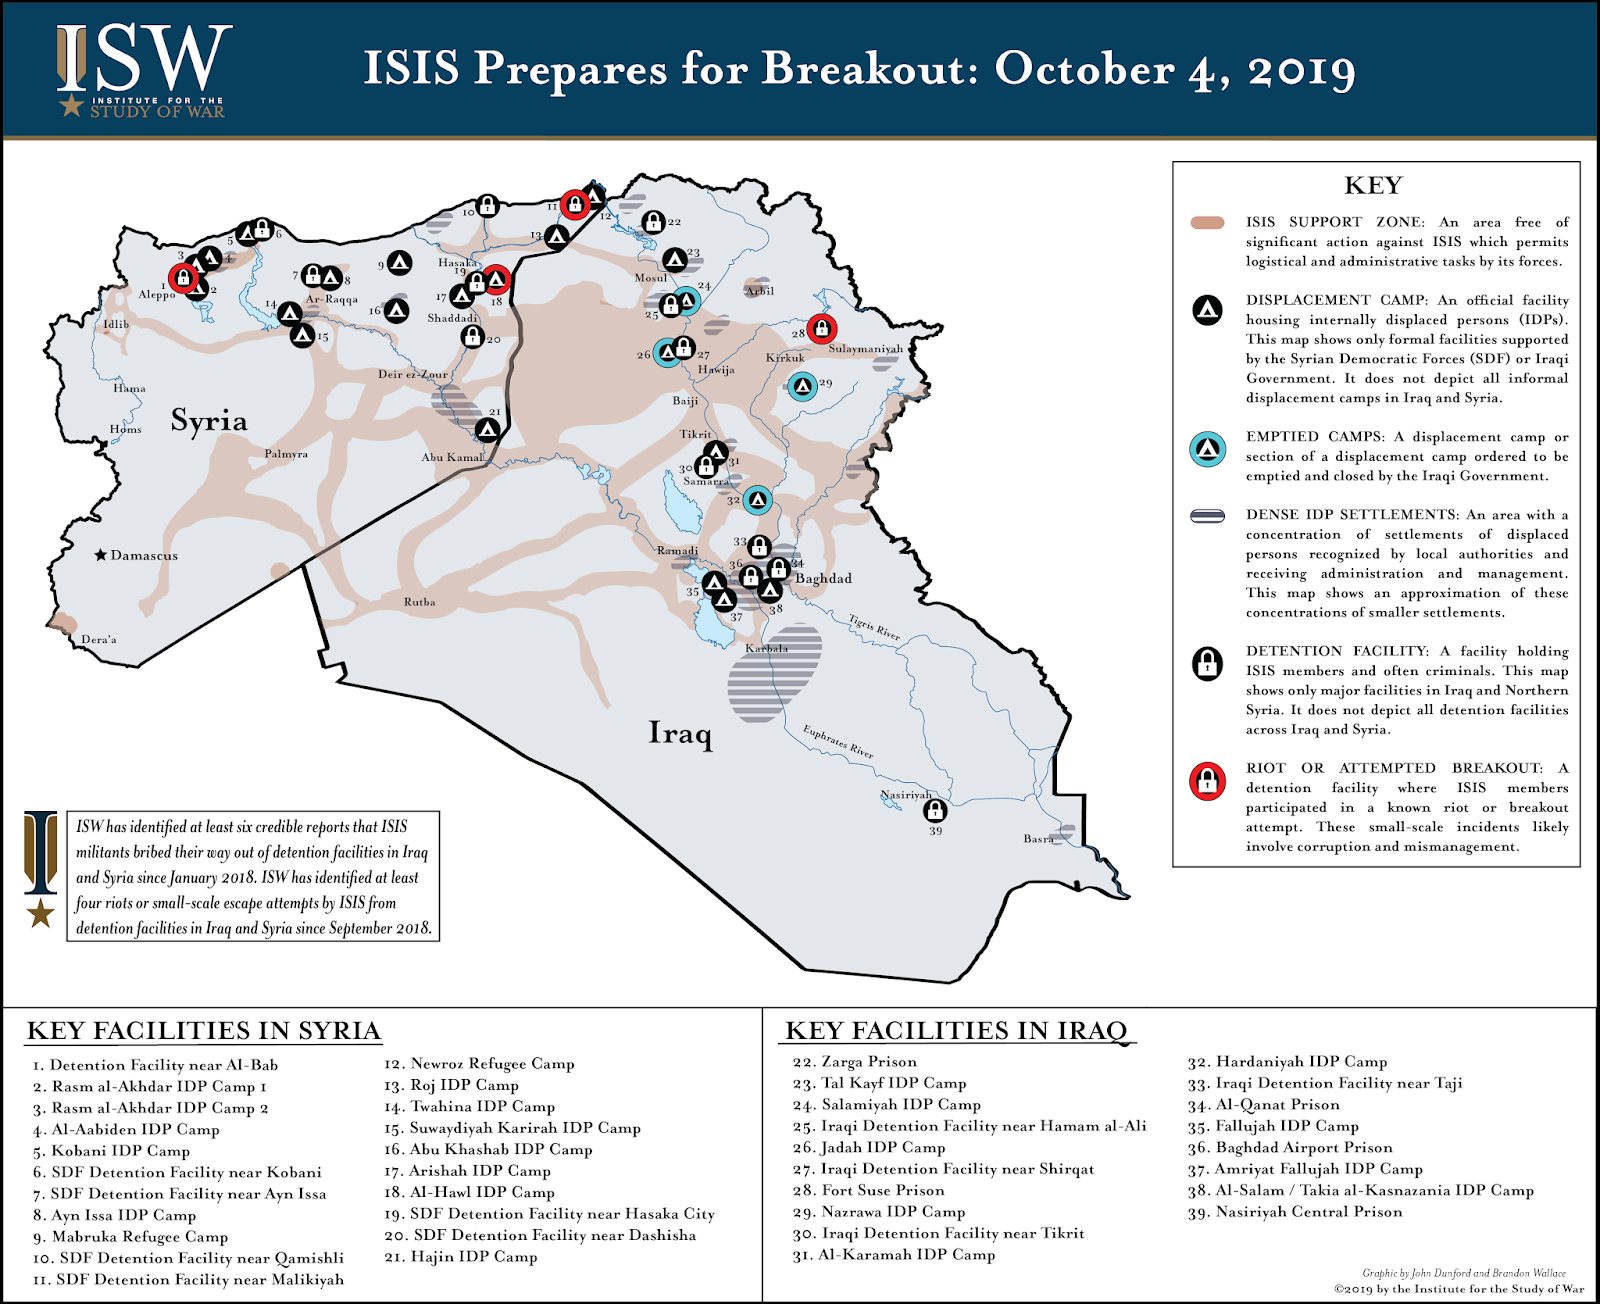 ISW Blog: ISIS\'s Campaign to Escape Detention in Iraq and Syria